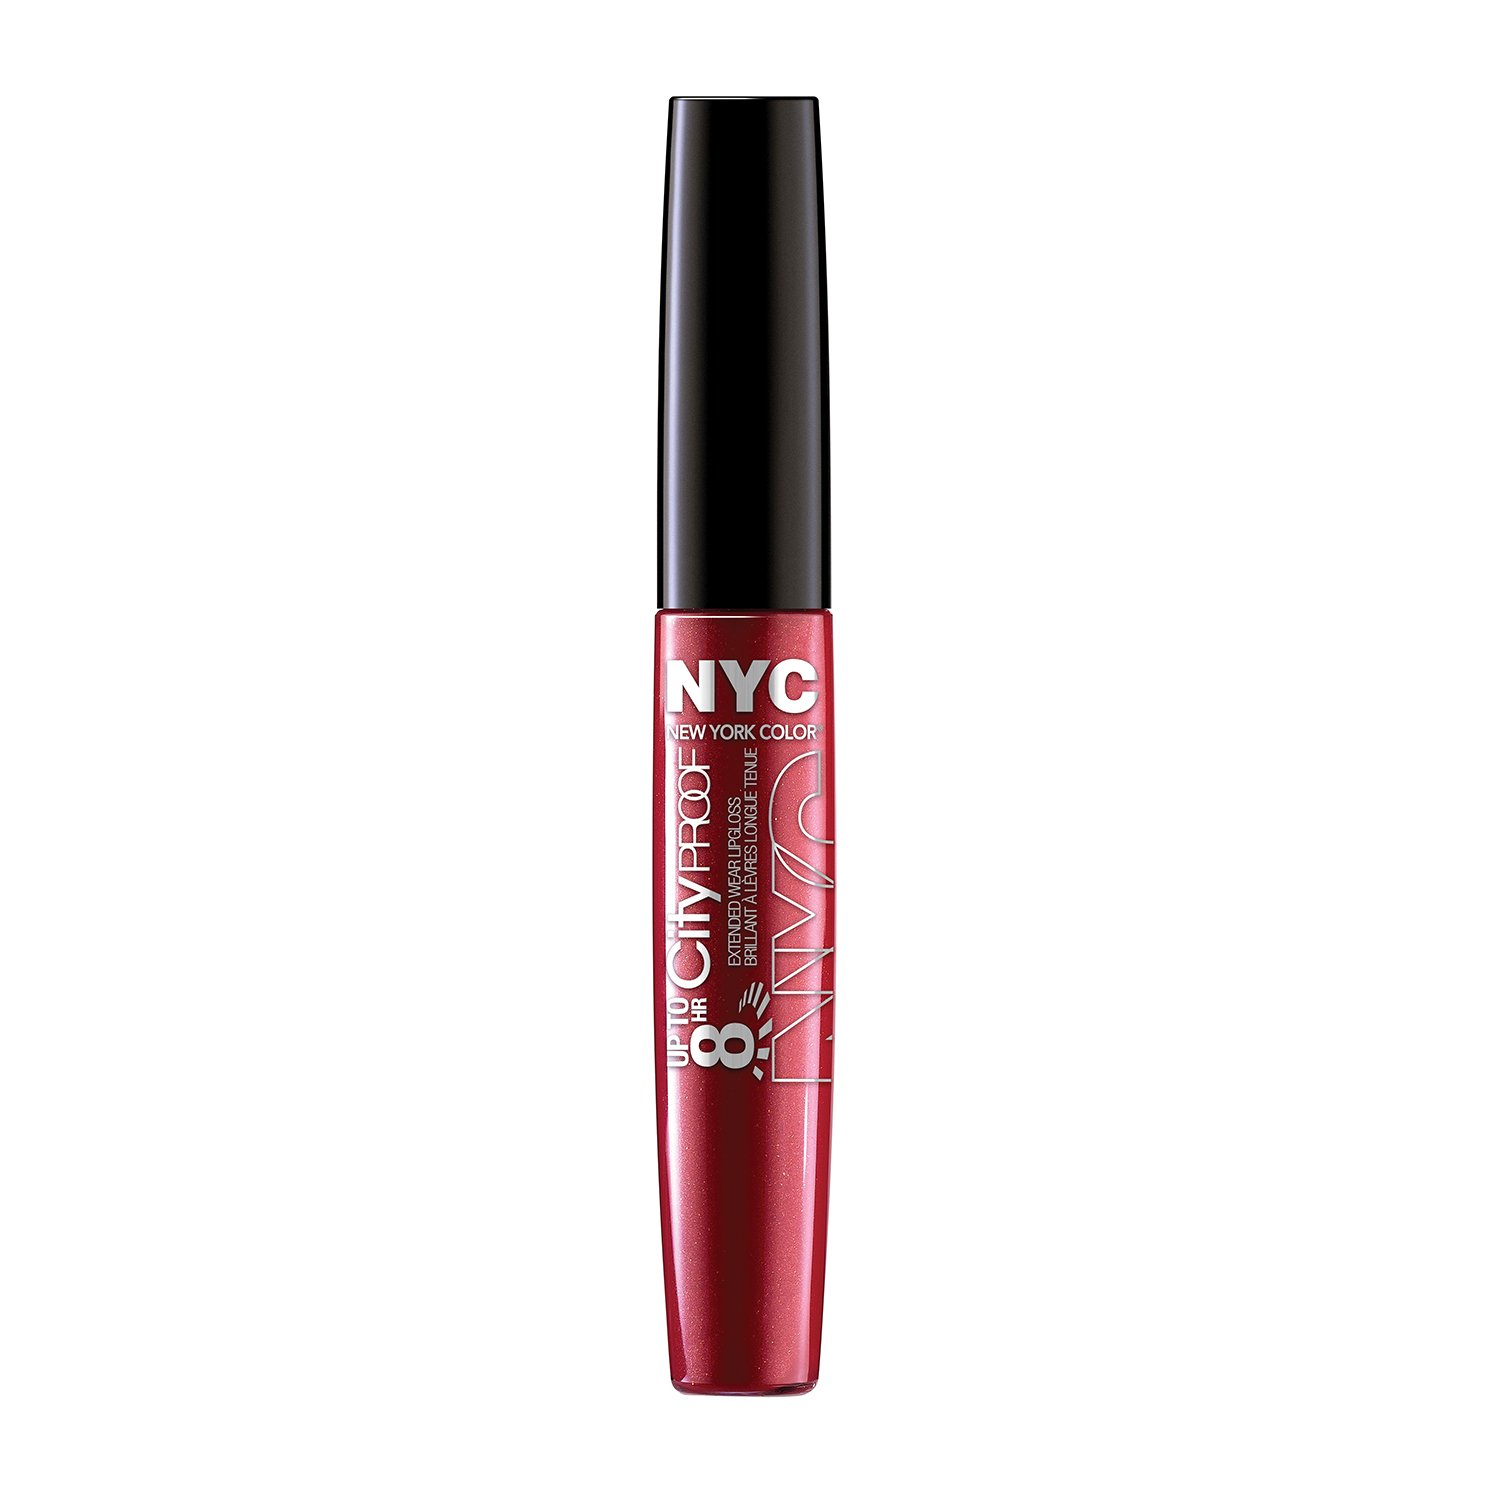 N.Y.C. New York Color 8 HR City Proof Extended Wear Lip Gloss, Cherry Ever After, 0.22 Fluid Ounce